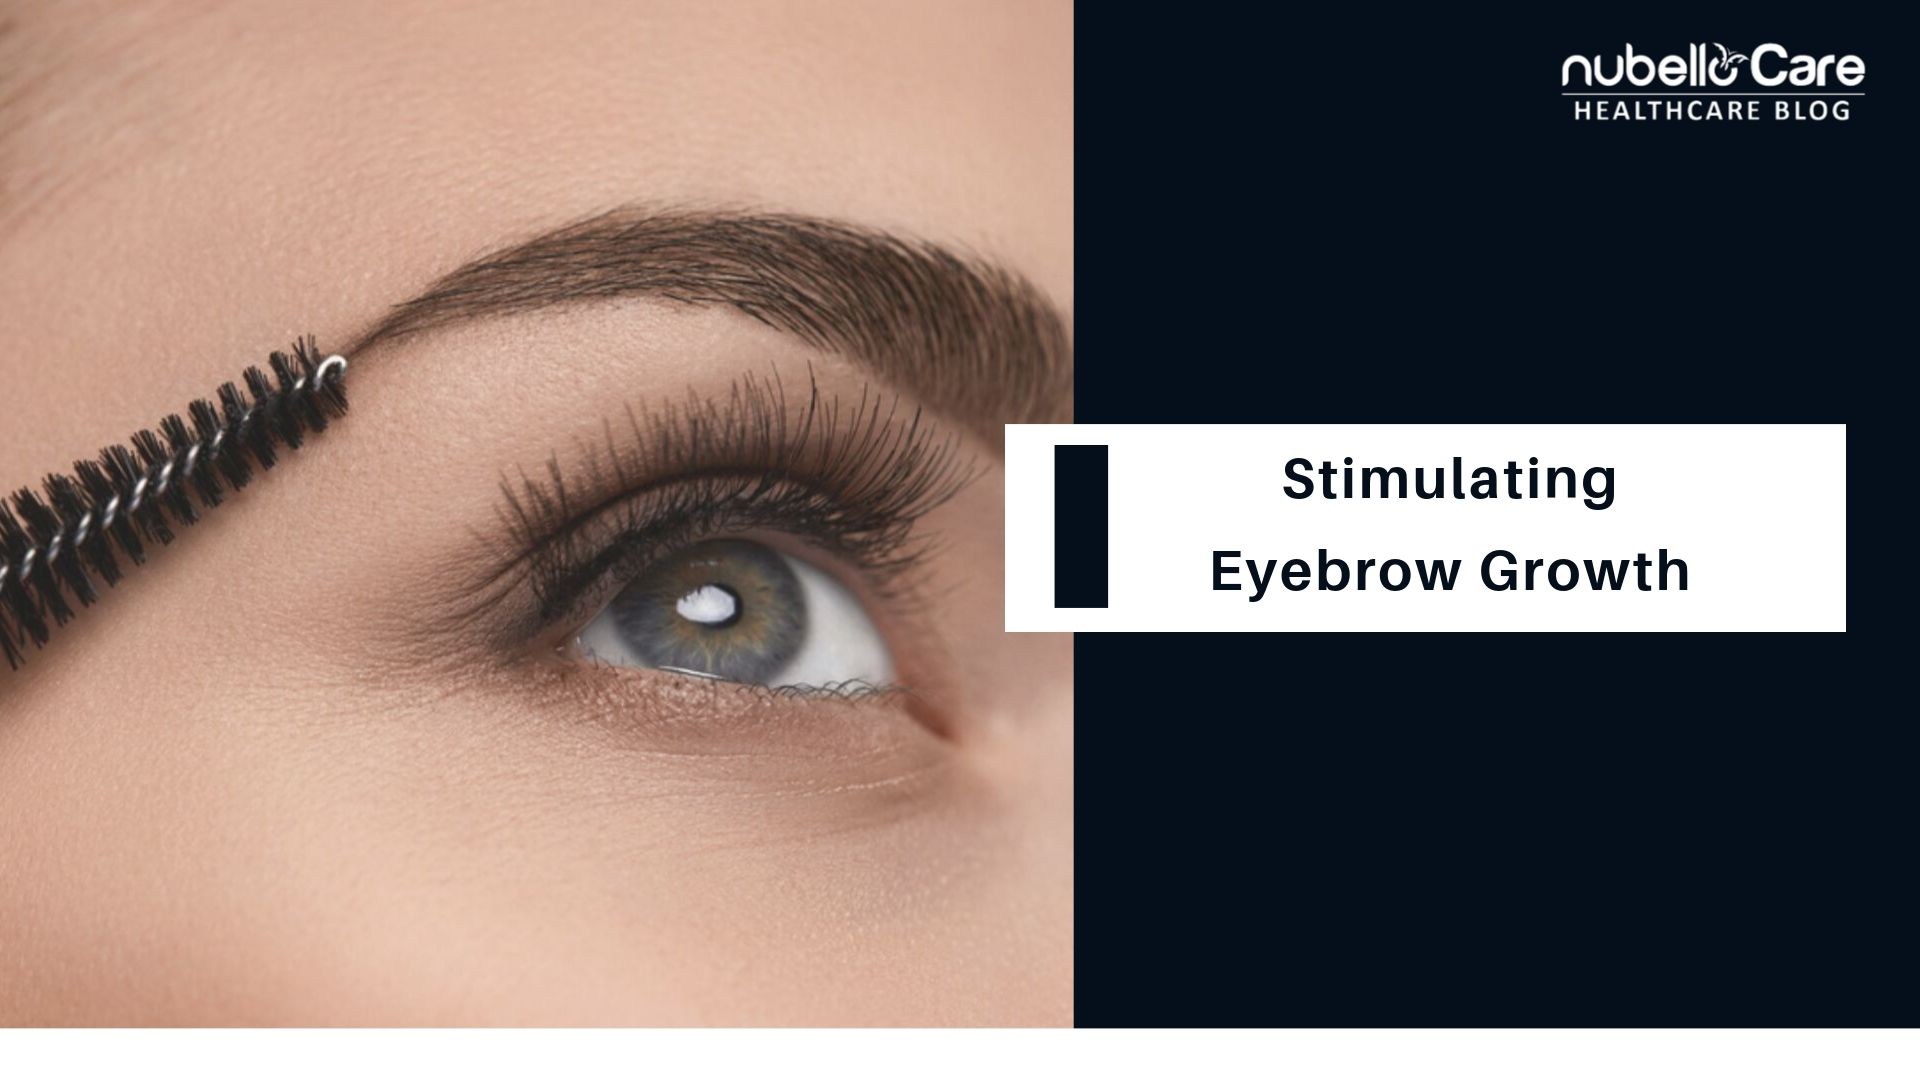 stimulating eyebrows - tips for growing eyebrows